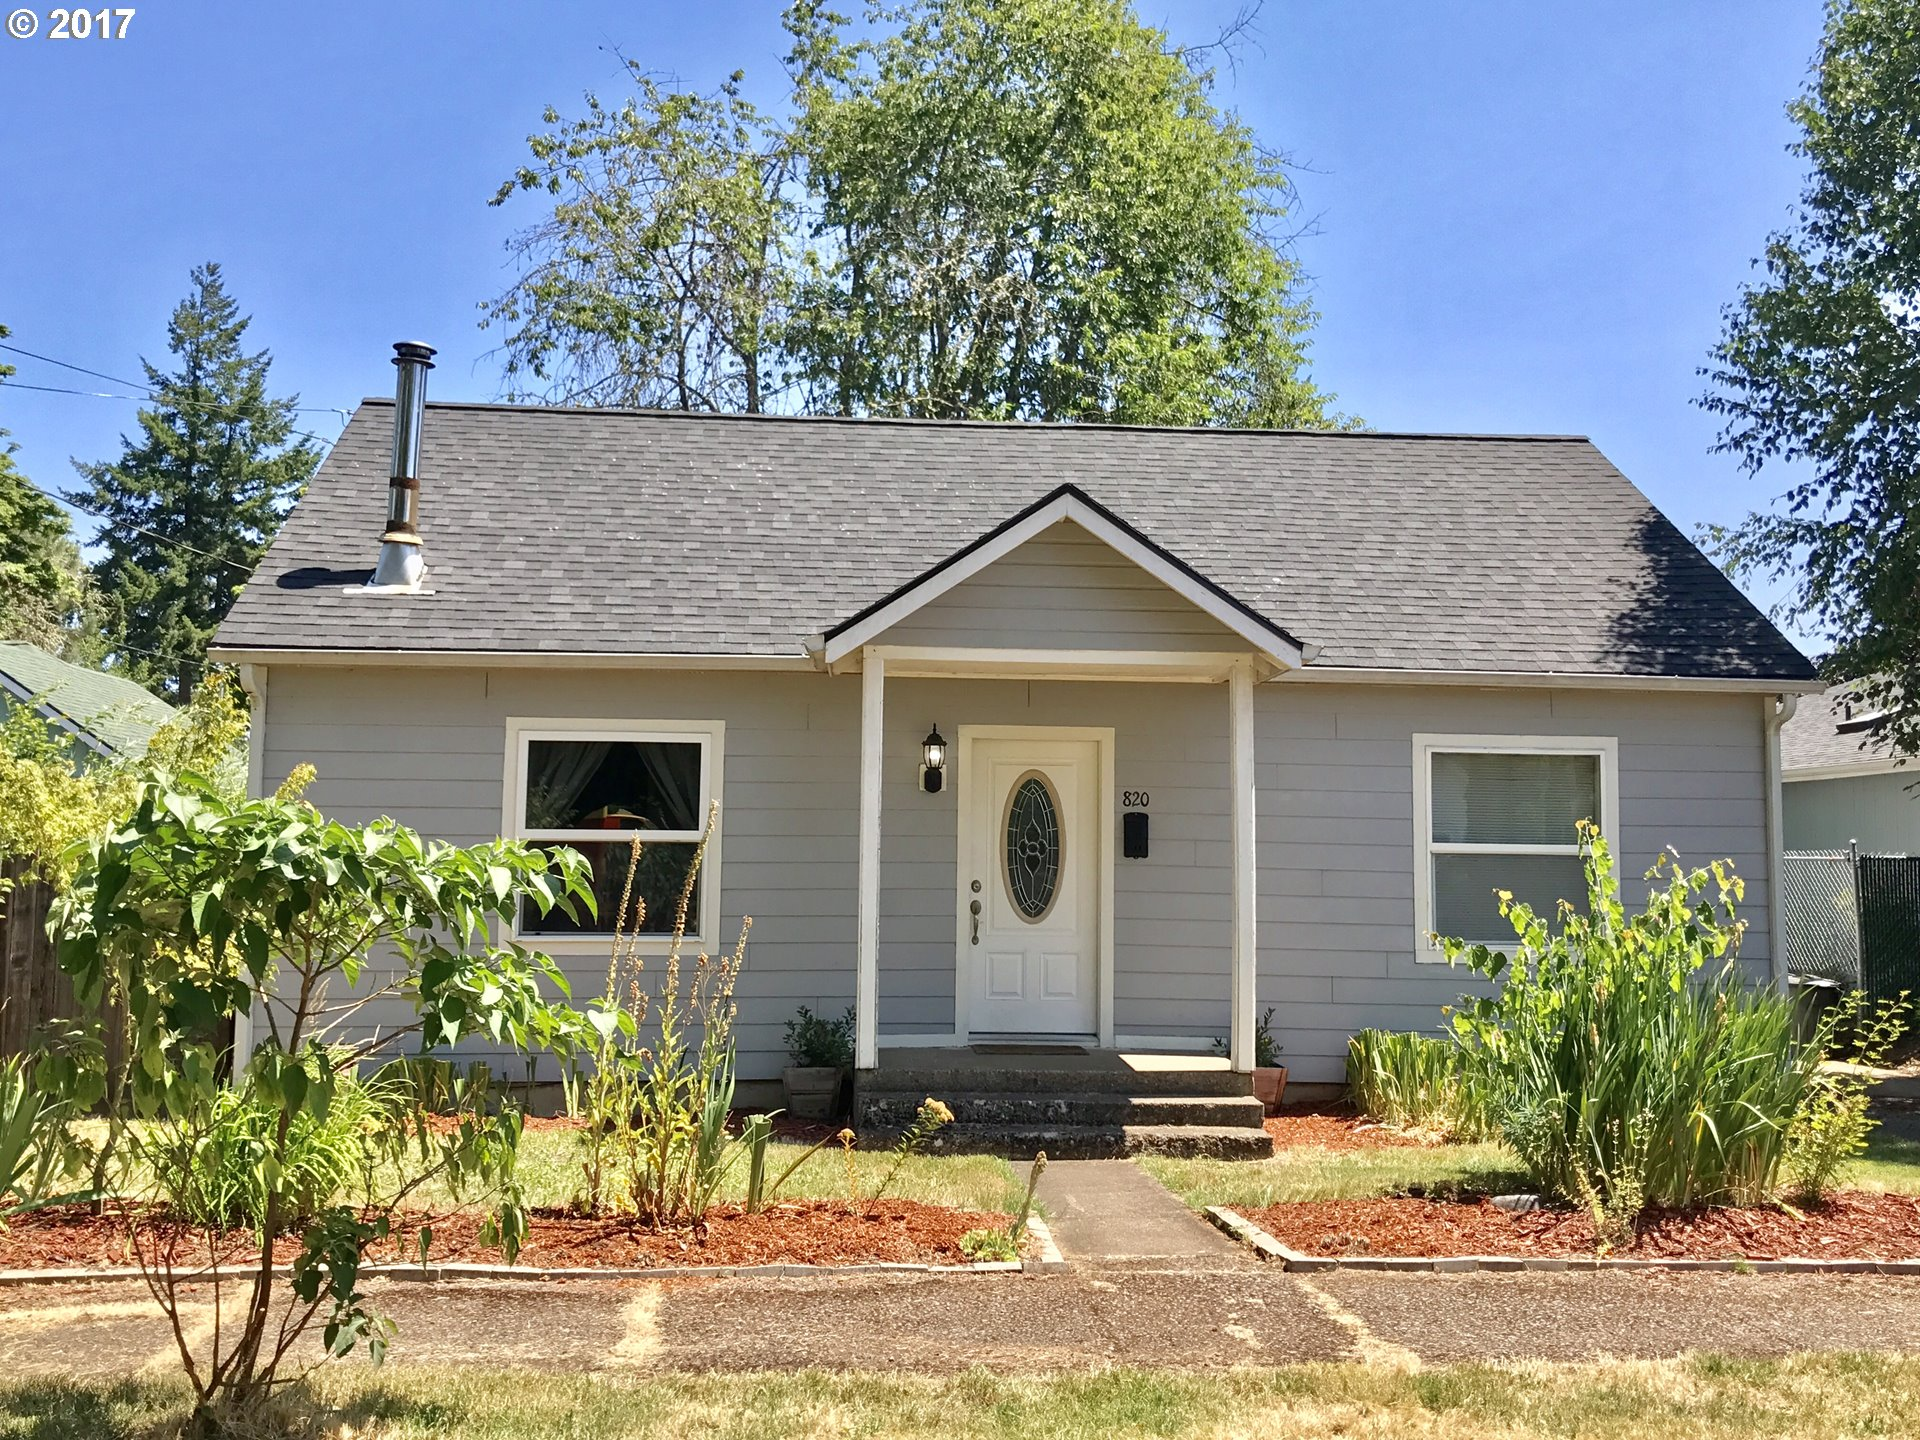 820 S 2ND ST, Cottage Grove, OR 97424